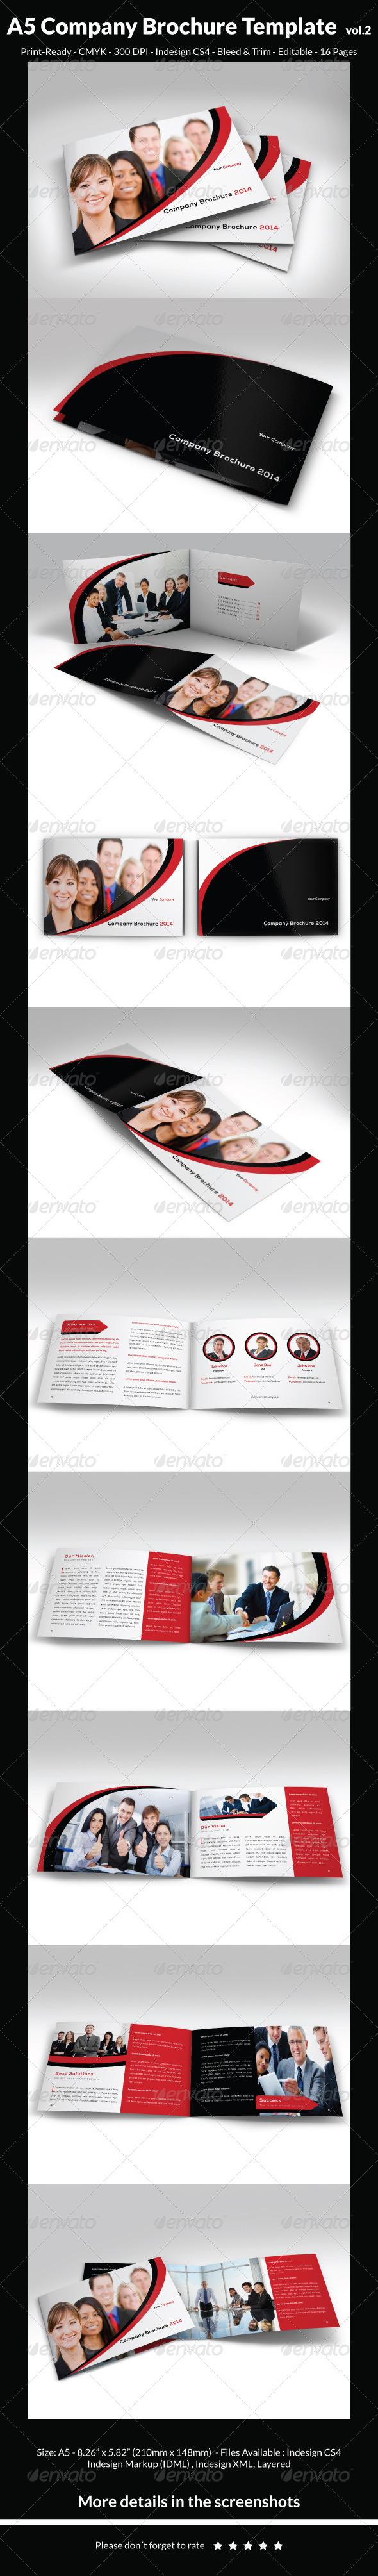 GraphicRiver A5 Company Brochure Template vol.2 6475737